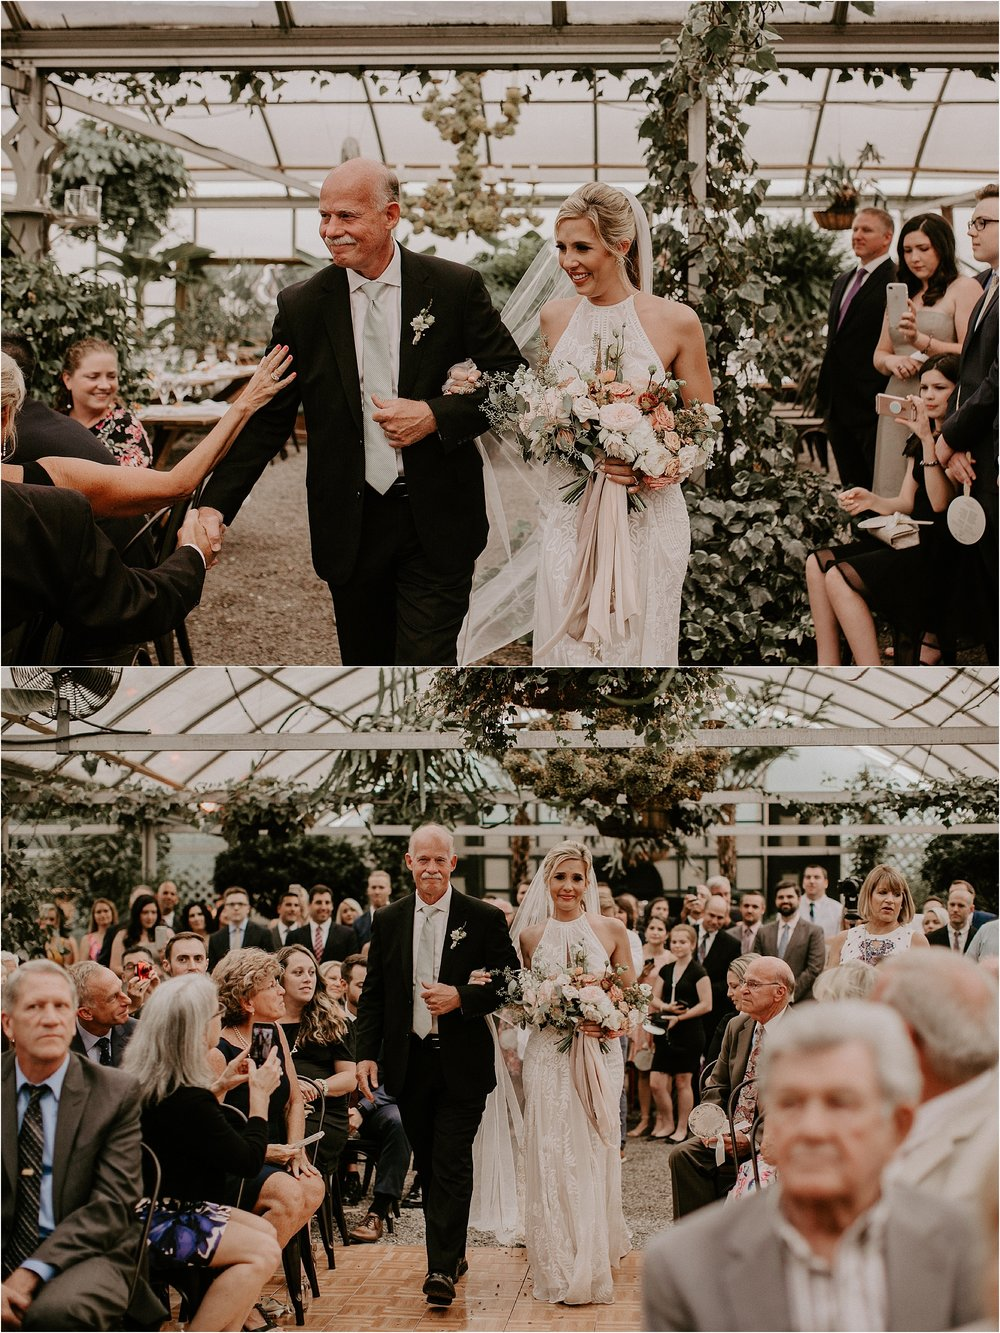 Sarah_Brookhart_Hortulus_Farm_Garden_and_Nursey_Wedding_Photographer_0045.jpg